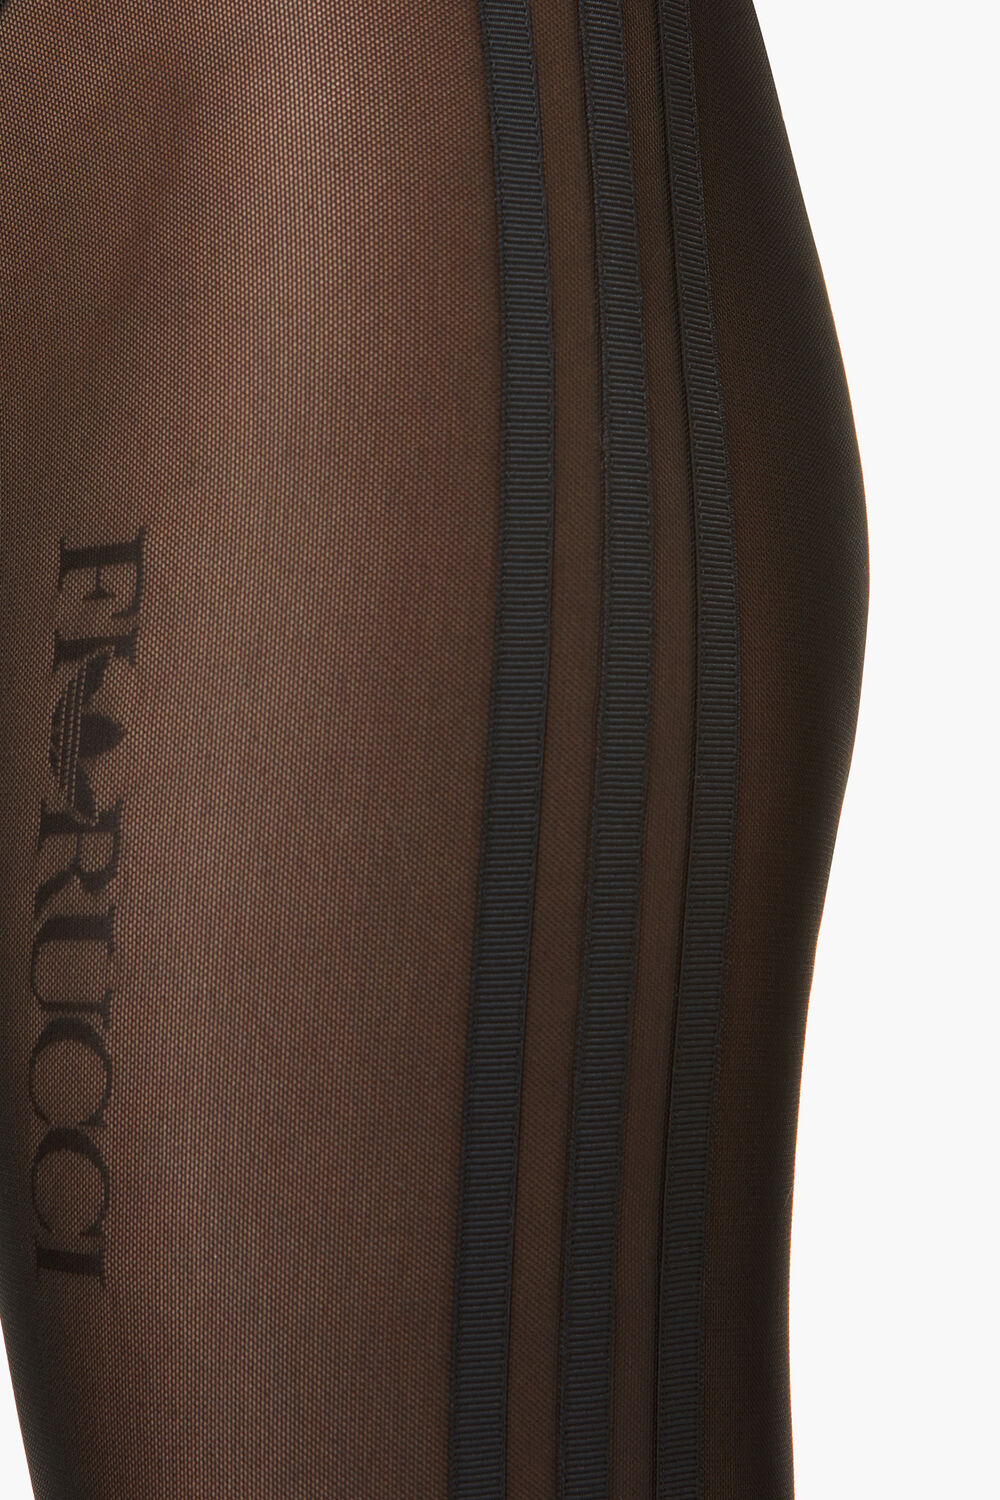 Adidas x Fiorucci Sheer Leggings Black